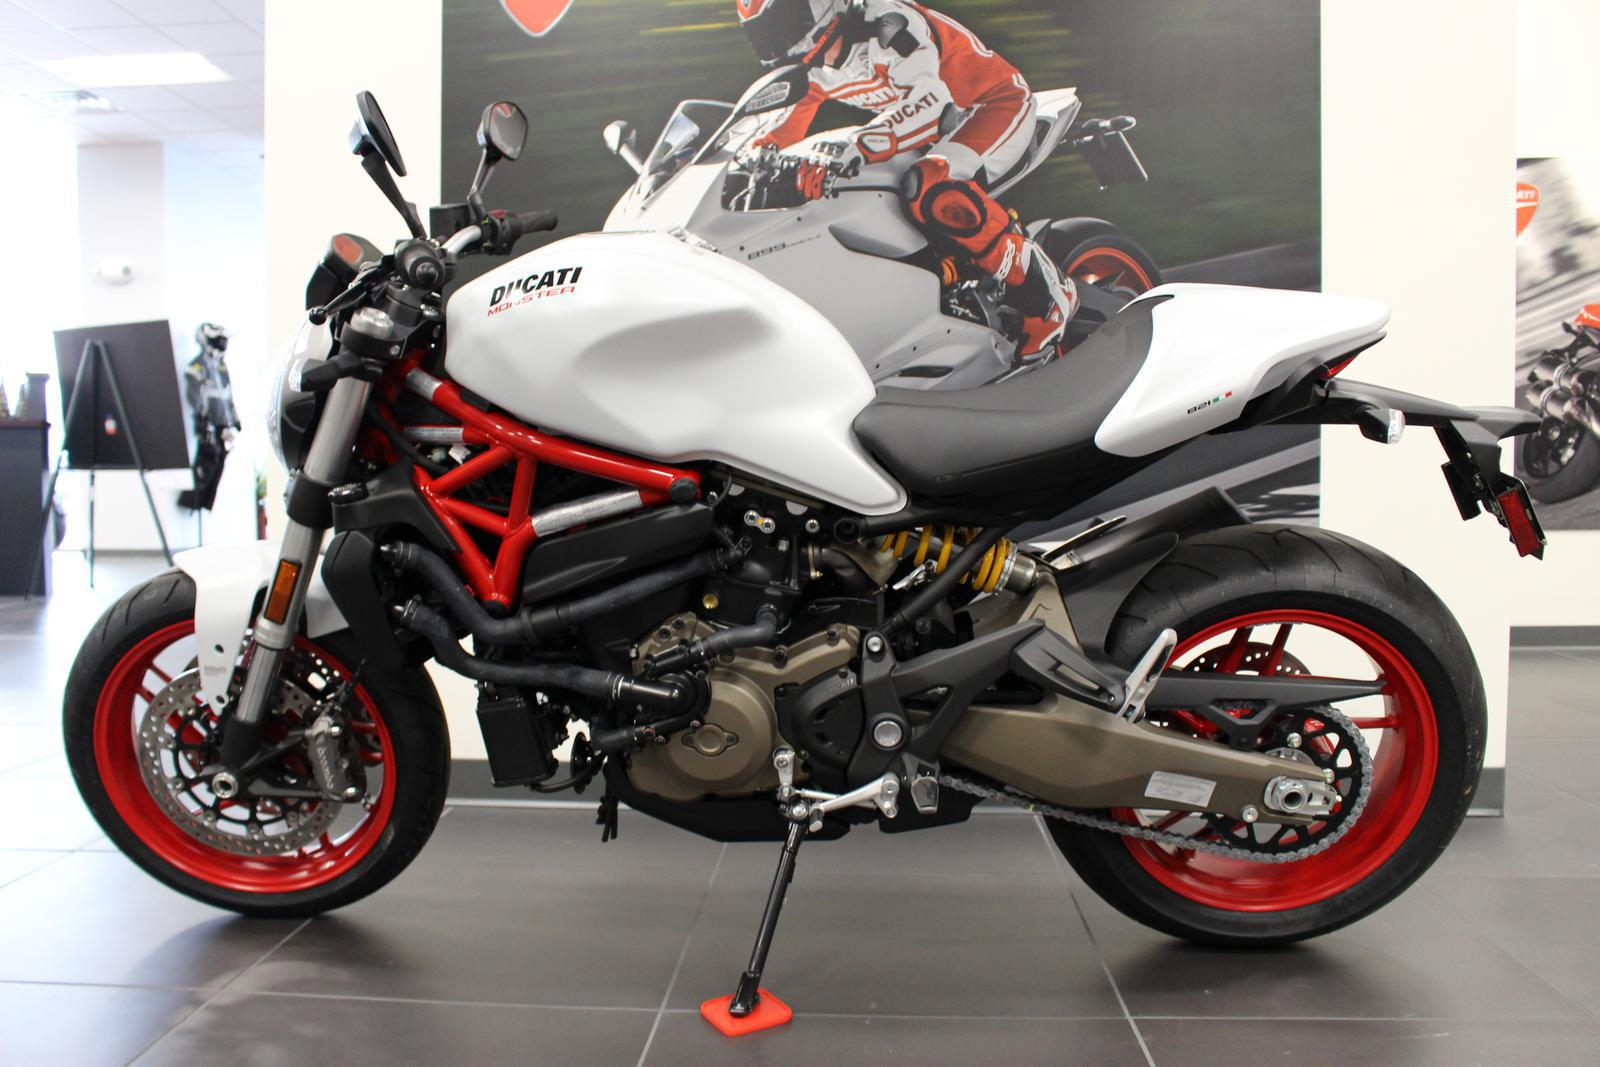 Ducati Monster 821 images #79396